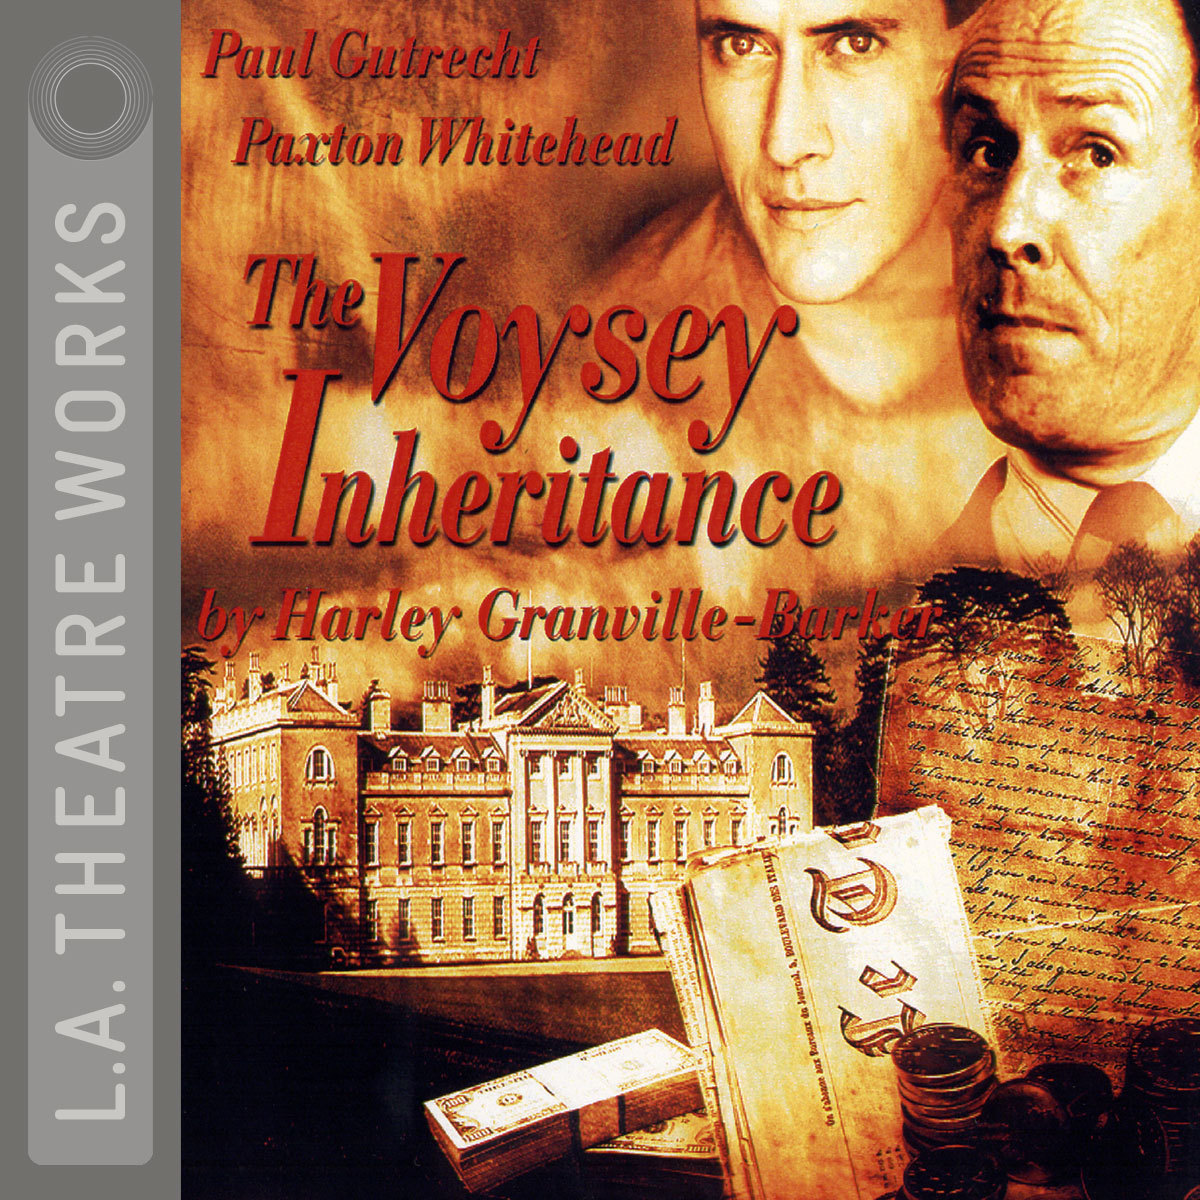 Printable The Voysey Inheritance Audiobook Cover Art